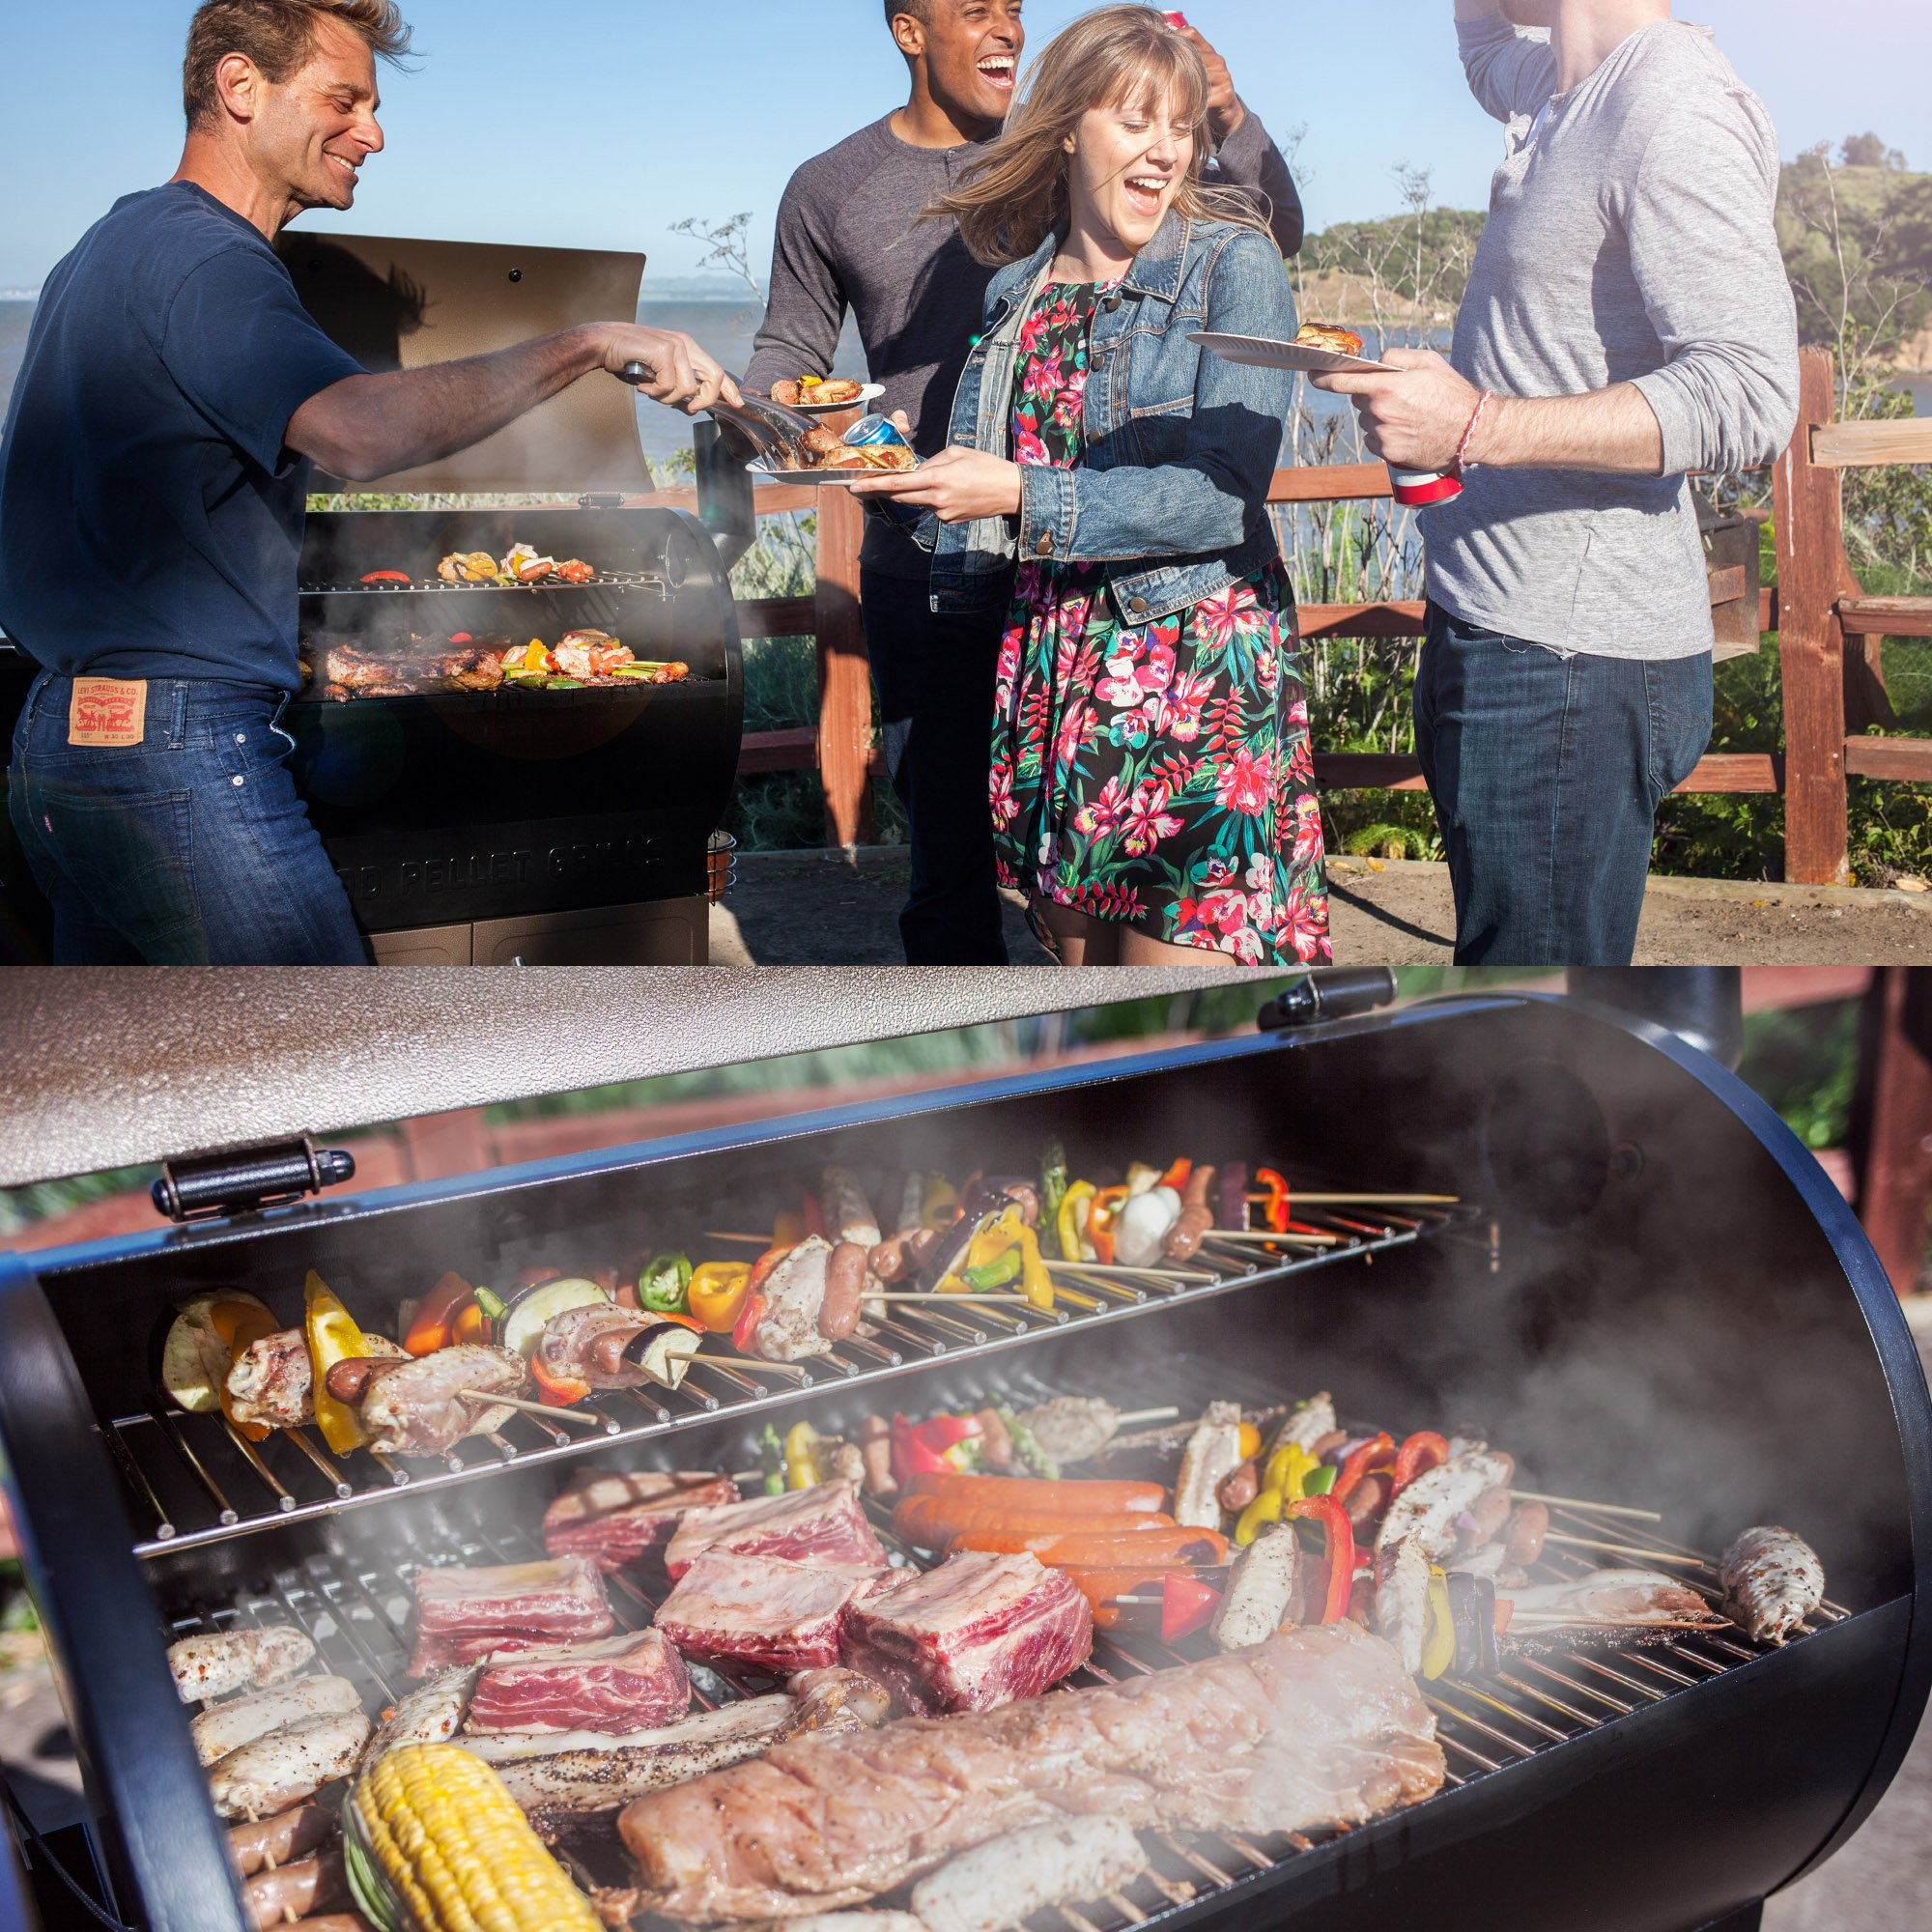 Z GRILLS ZPG-550B 2019 Upgrade Model Wood Pellet Grill & Smoker 6 in 1 BBQ Grill Auto Temperature Control, 550 sq Inch Deal, Black by Z GRILLS (Image #6)